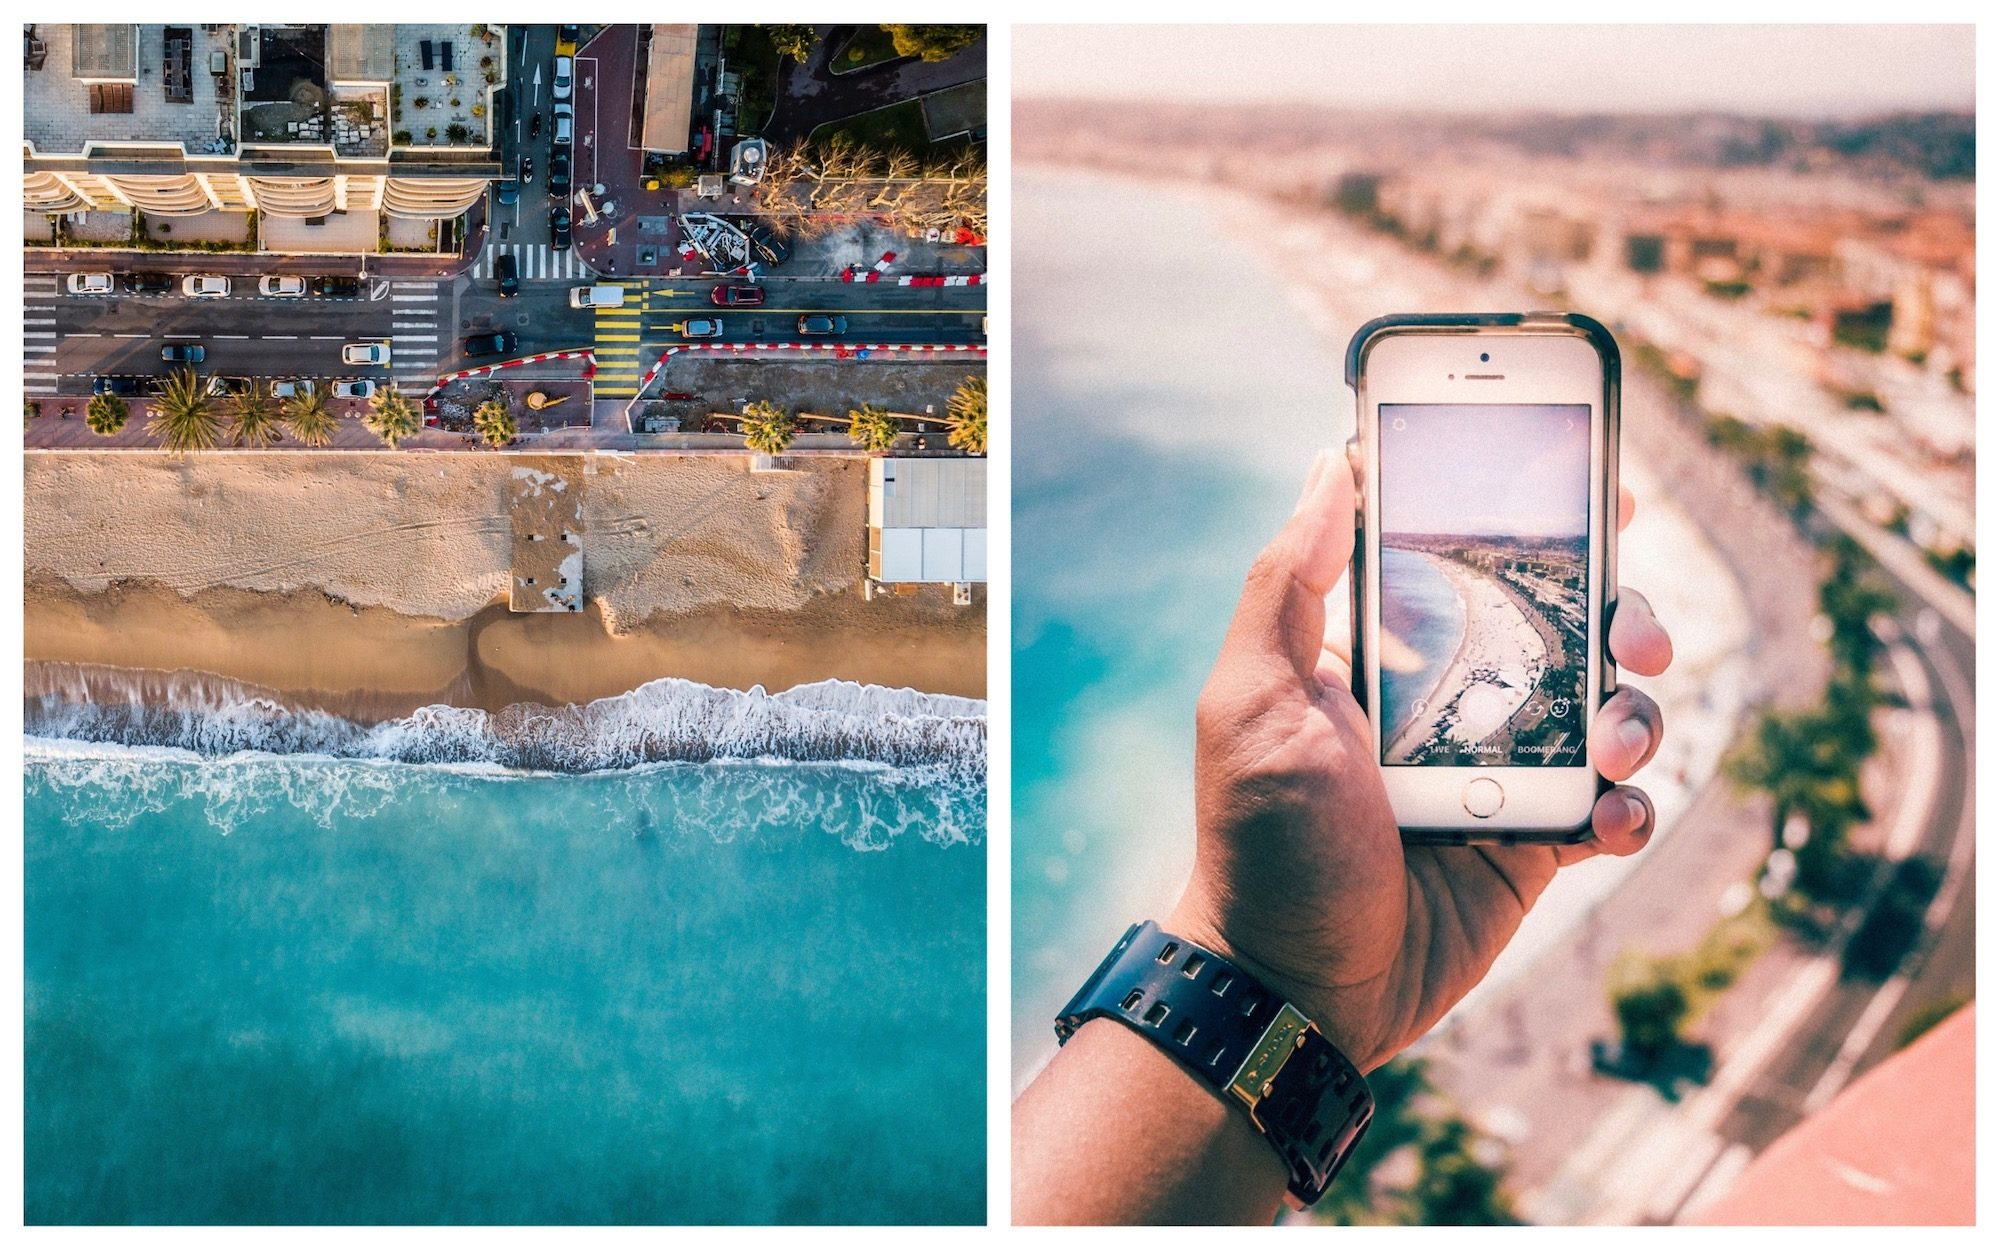 HiP Paris Blog rounds up the best French podcasts to listen to this summer whether you're going to be lying on a sandy beach (left) or exploring a new city (right).